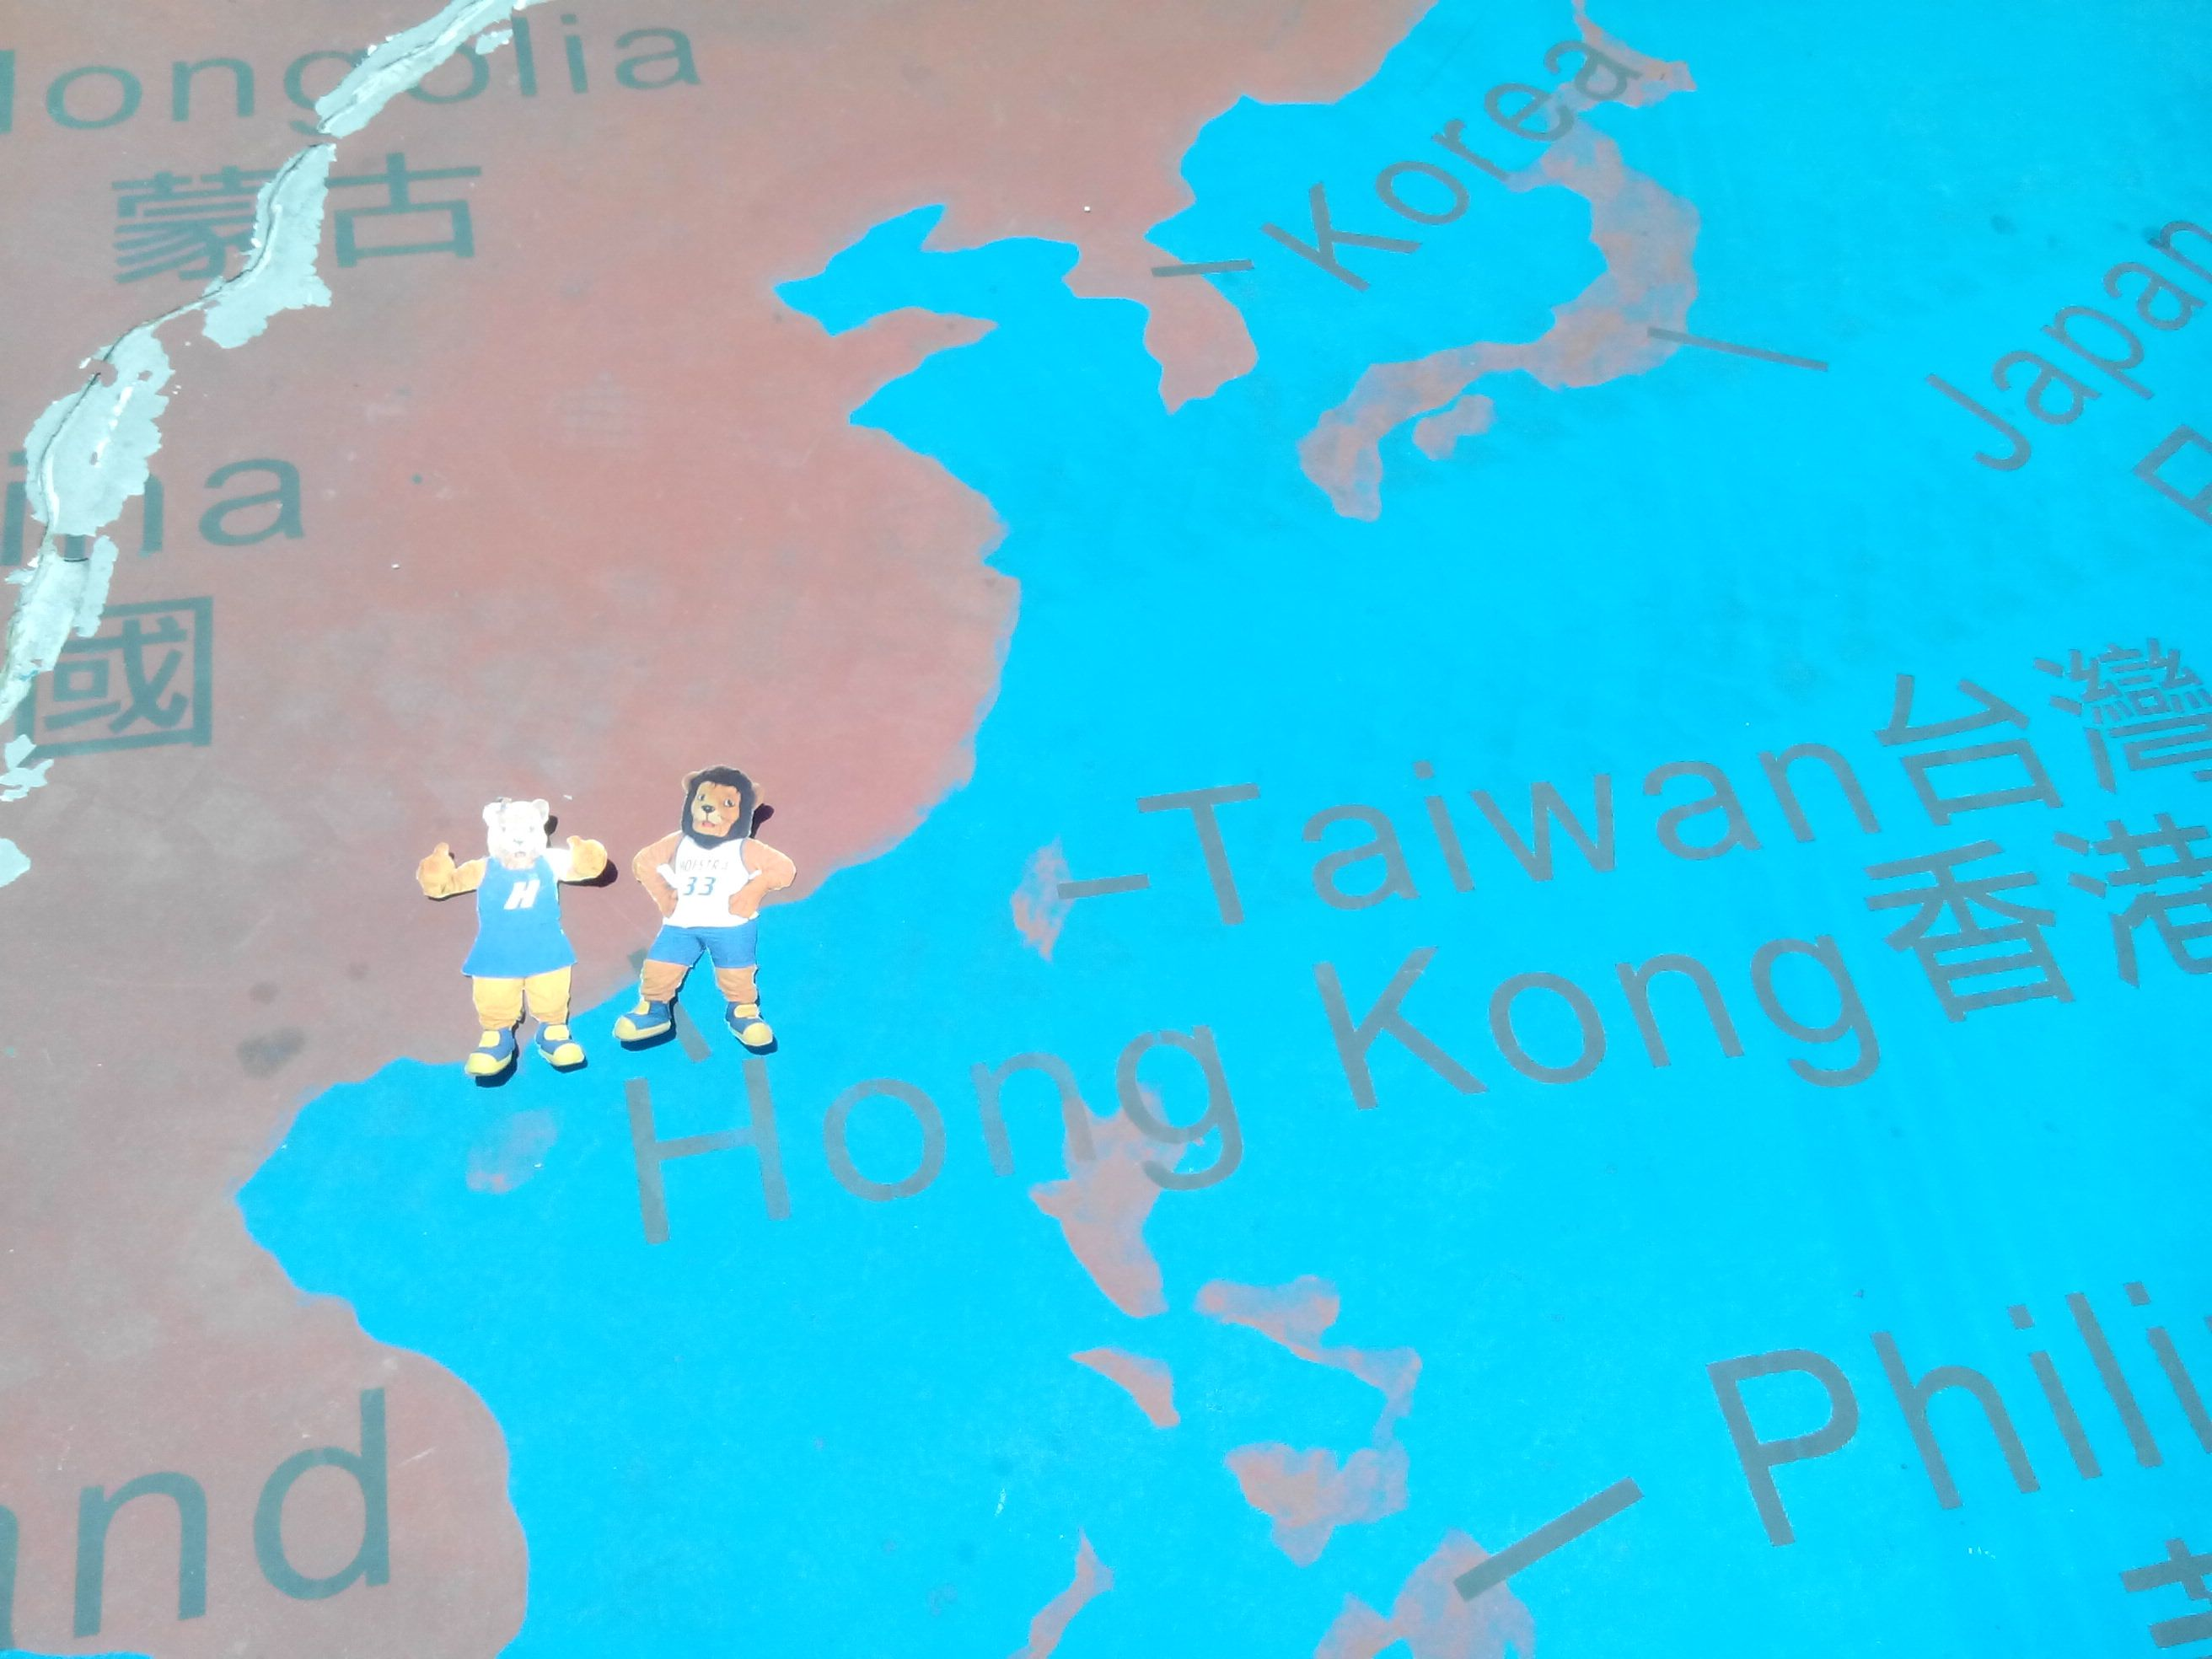 Check us out! We are really traveling the world. Here we are at Victoria Shanghai Academy in Hong Kong.